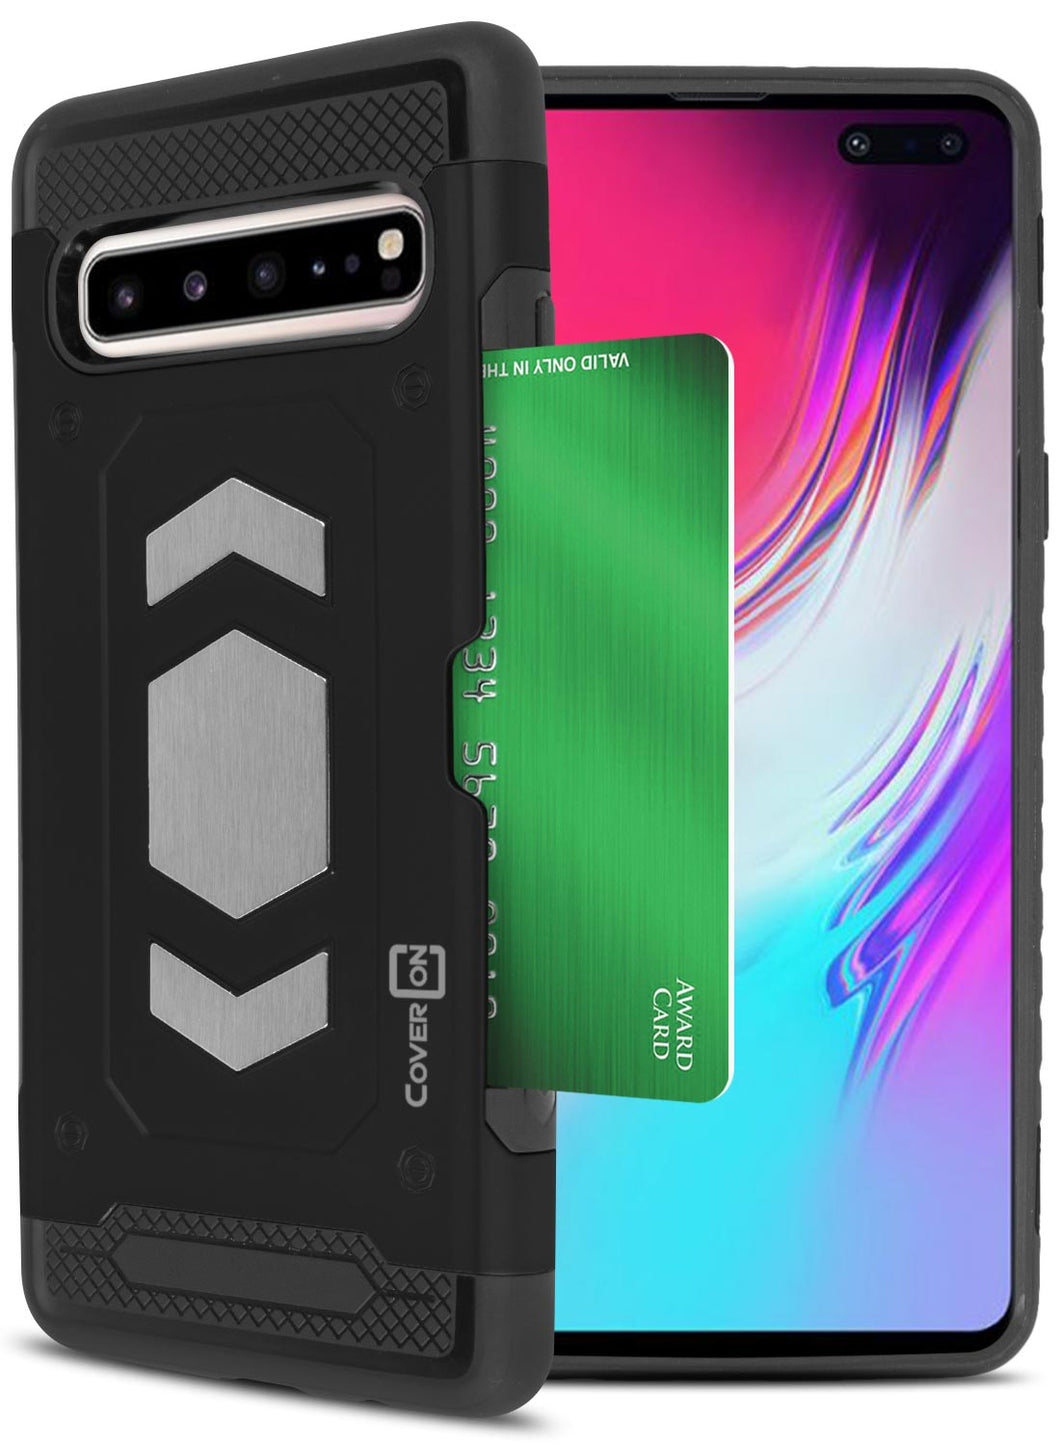 Samsung Galaxy S10 5G Card Case with Metal Plate - Metal Series